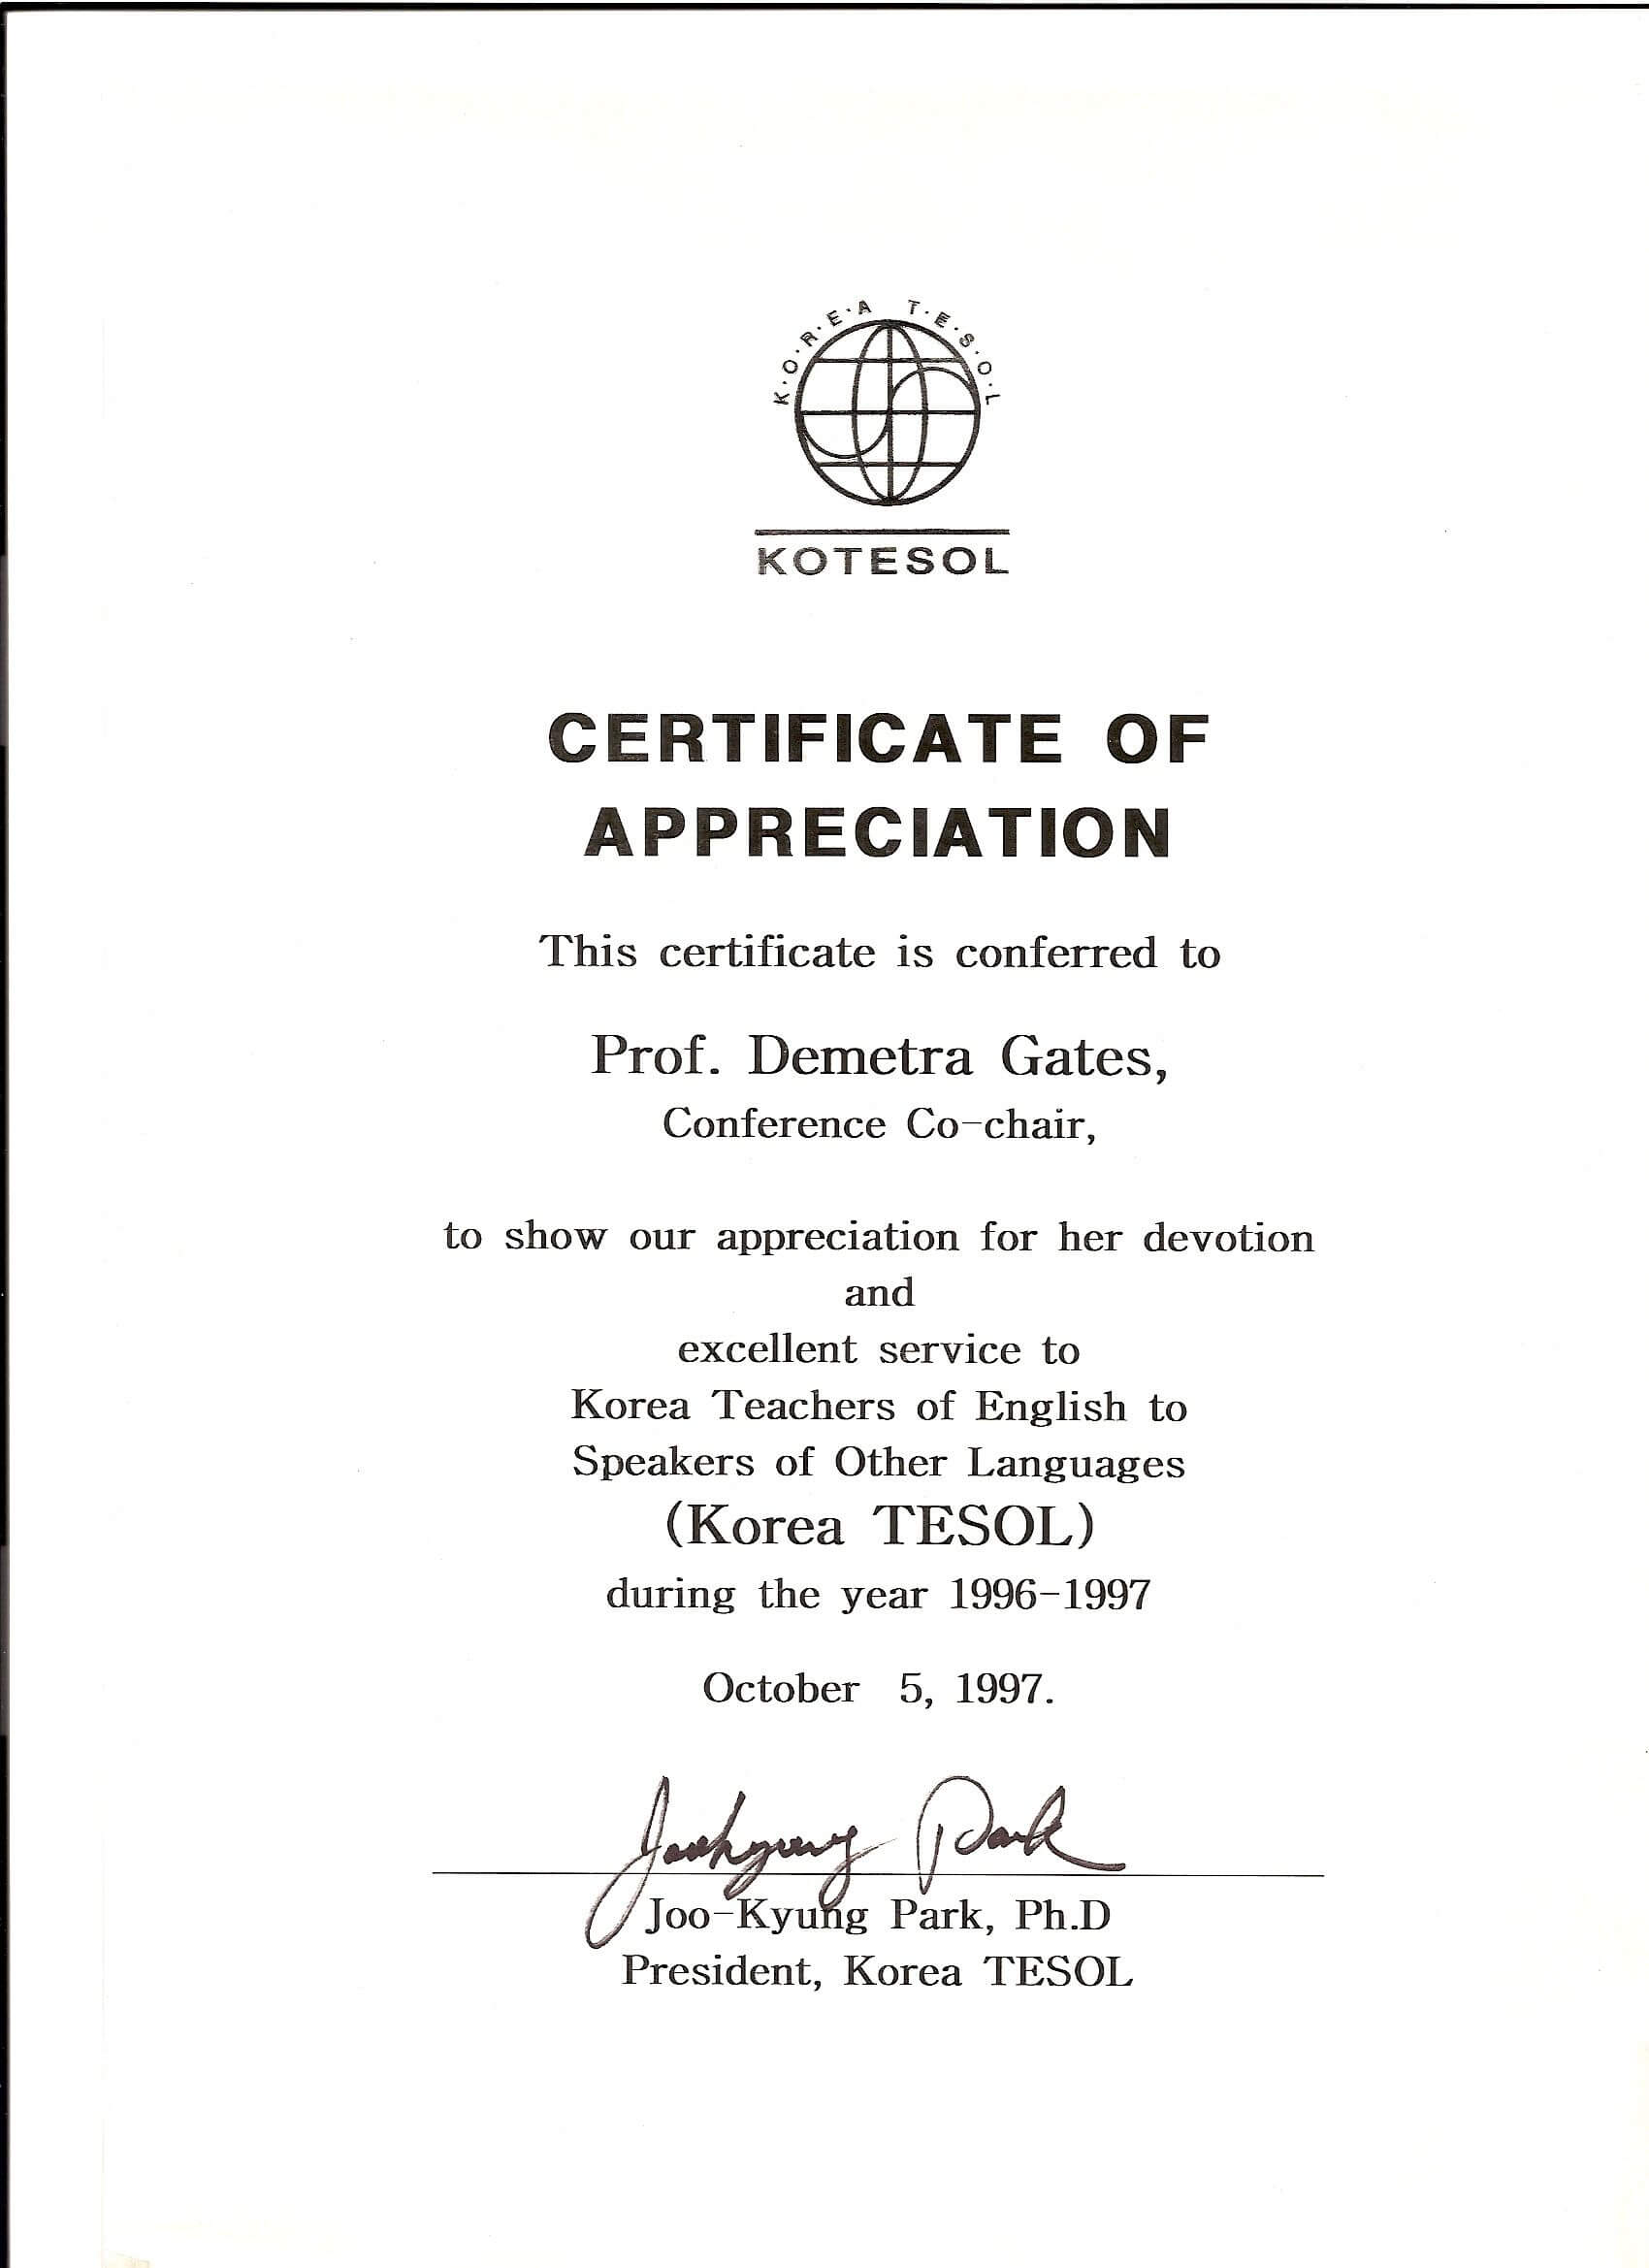 Kotesol Presidential Certificate Of Appreciation (1997 Pertaining To Certificate Of Attendance Conference Template